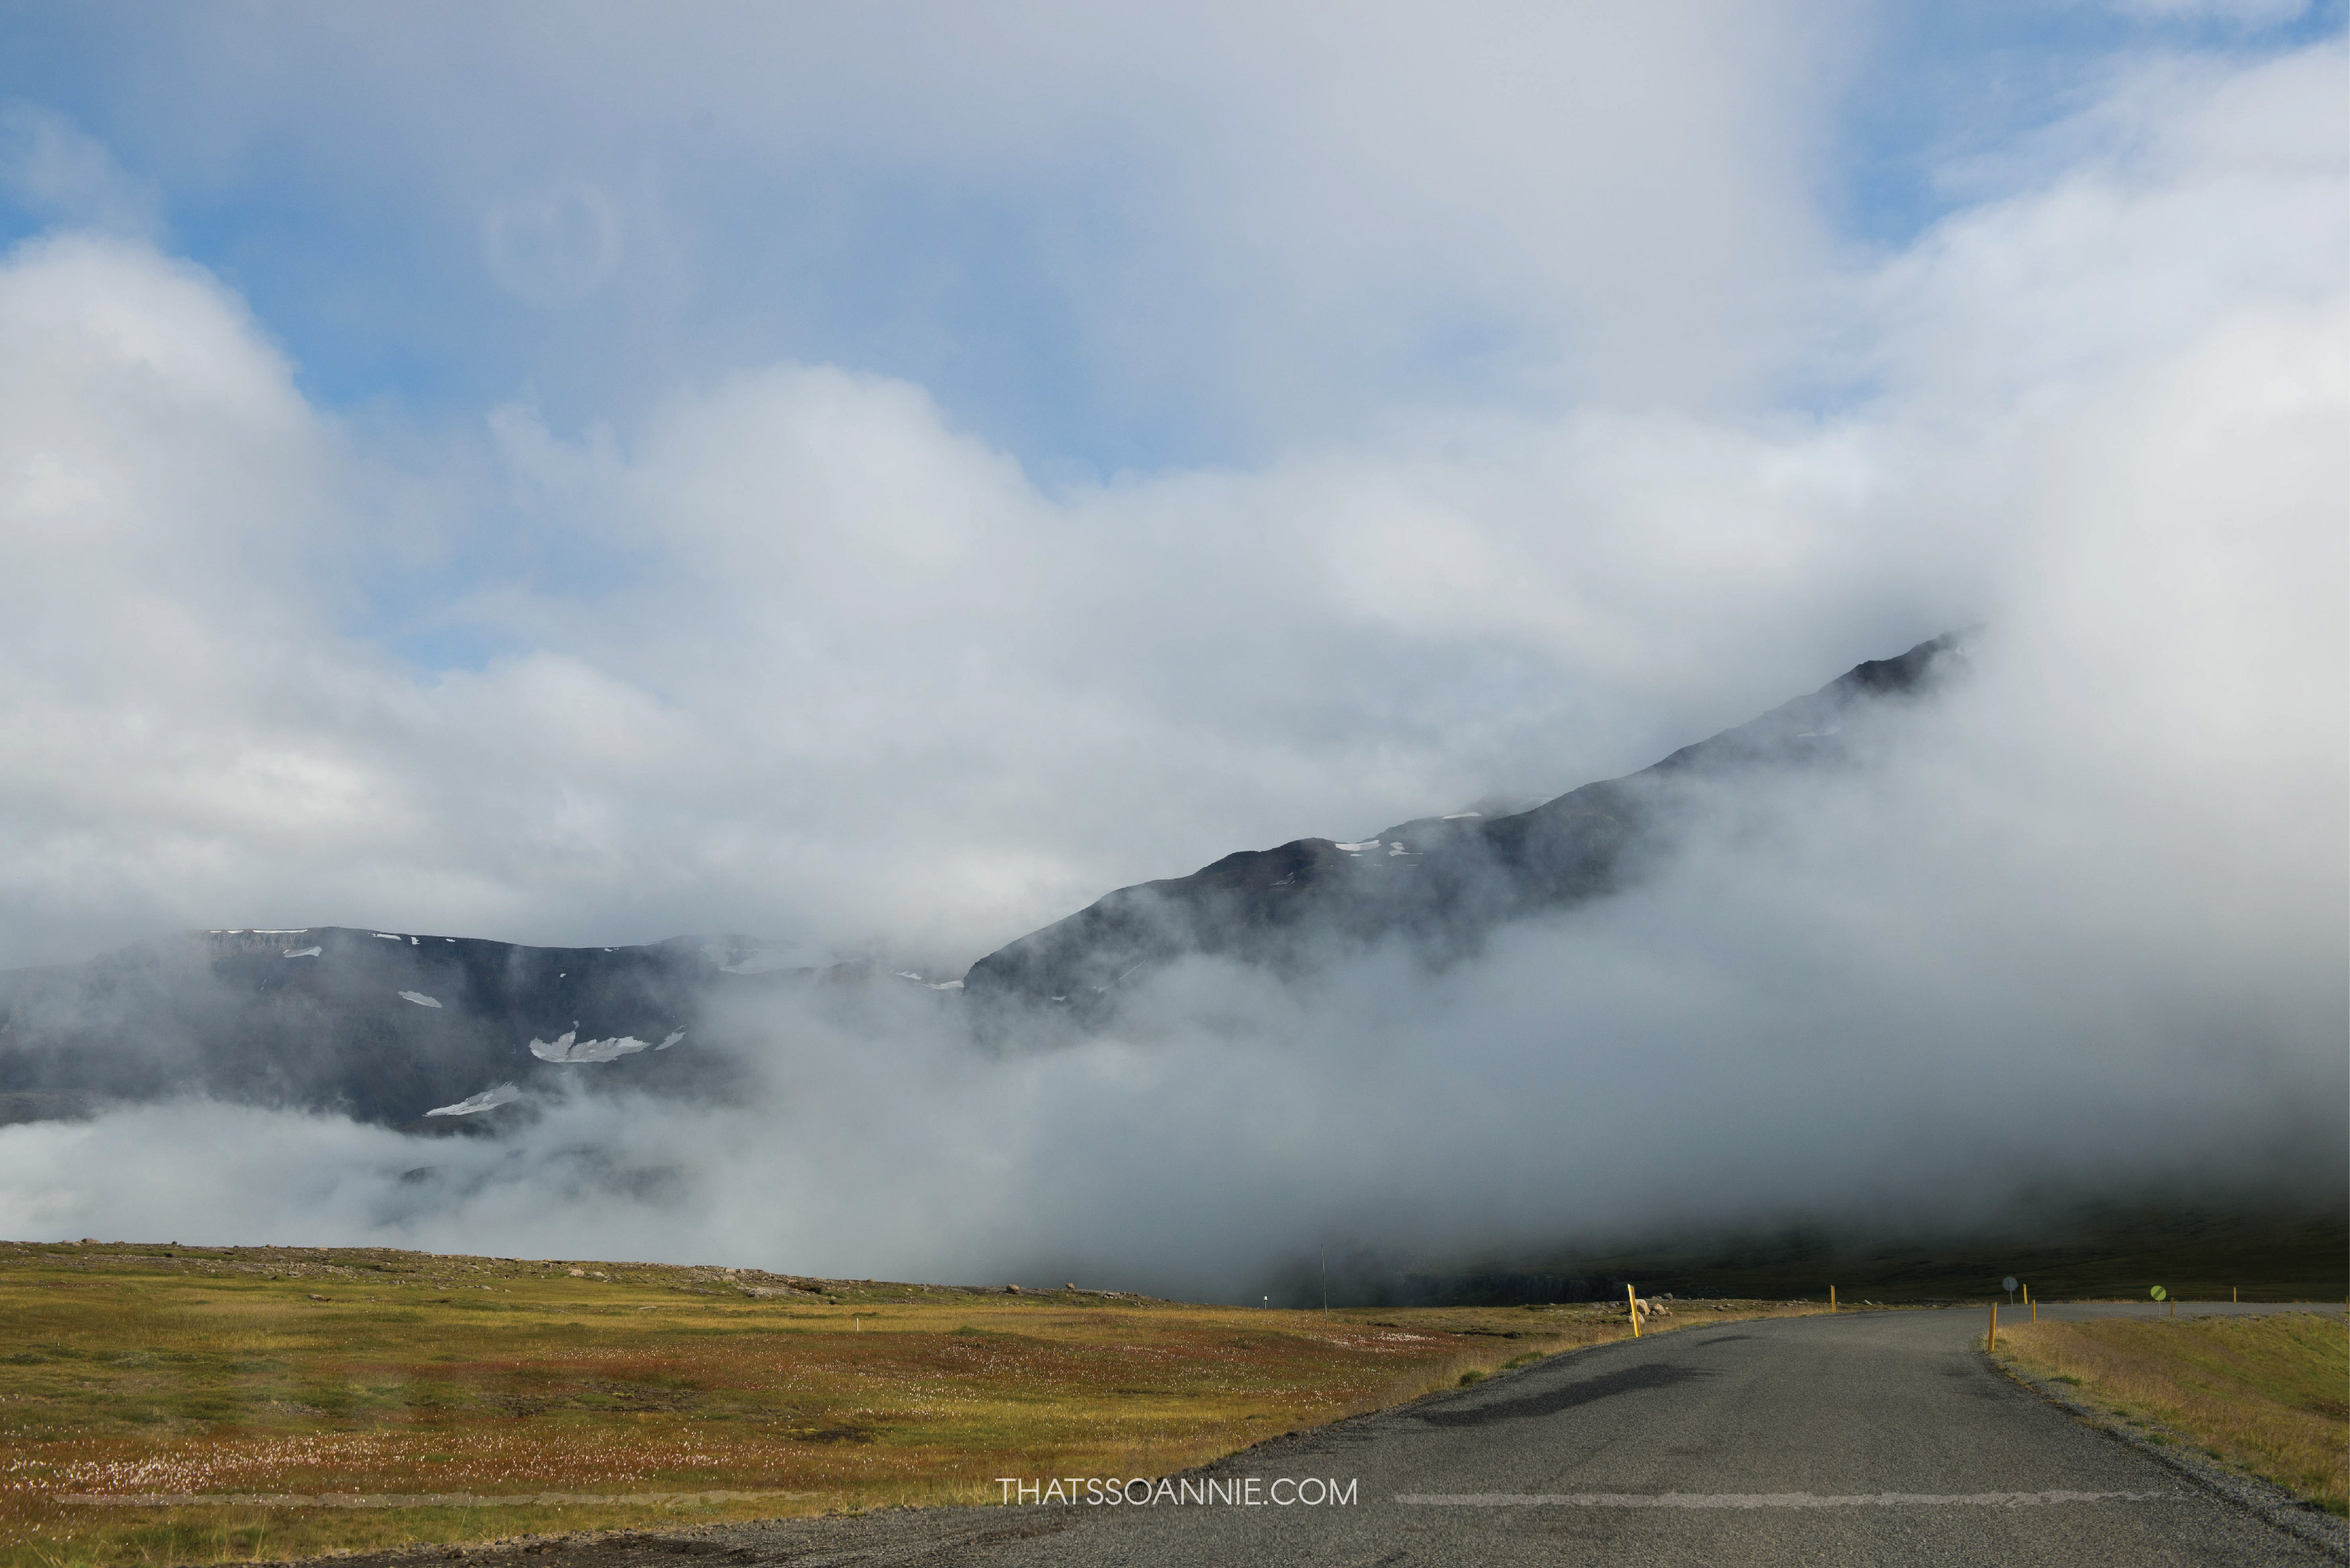 Driving through clouds!